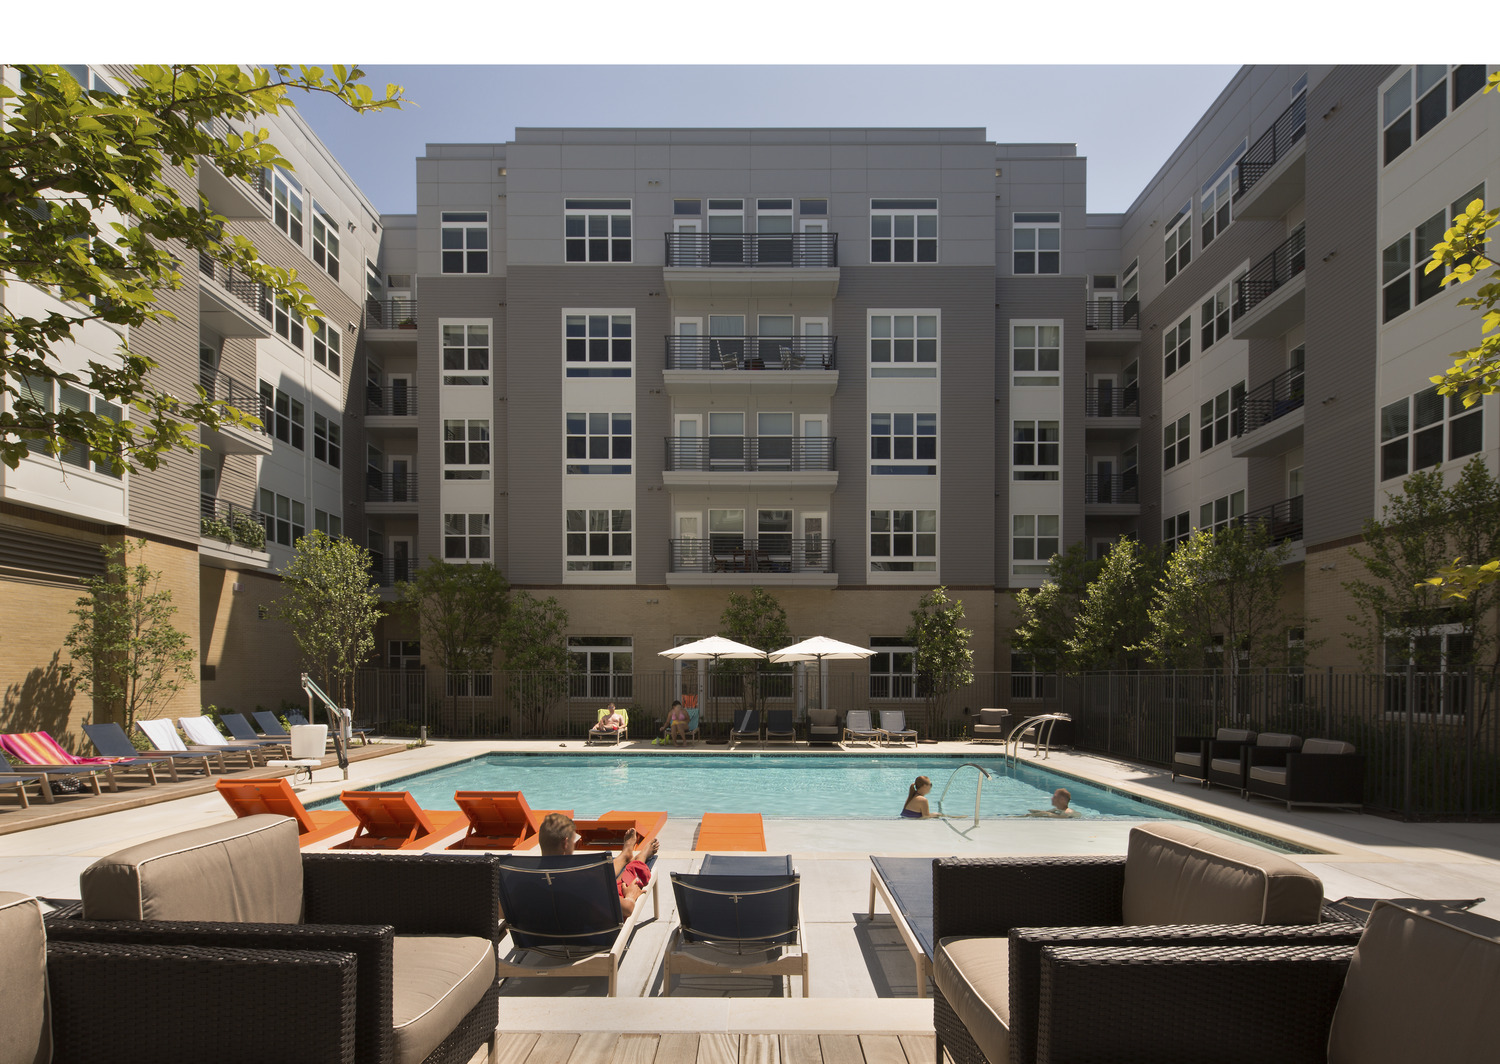 CBG builds The Metropolitan Downtown Columbia, a 380-Unit Mixed-Use Development with Parking Garage in Columbia, MD - Image #9